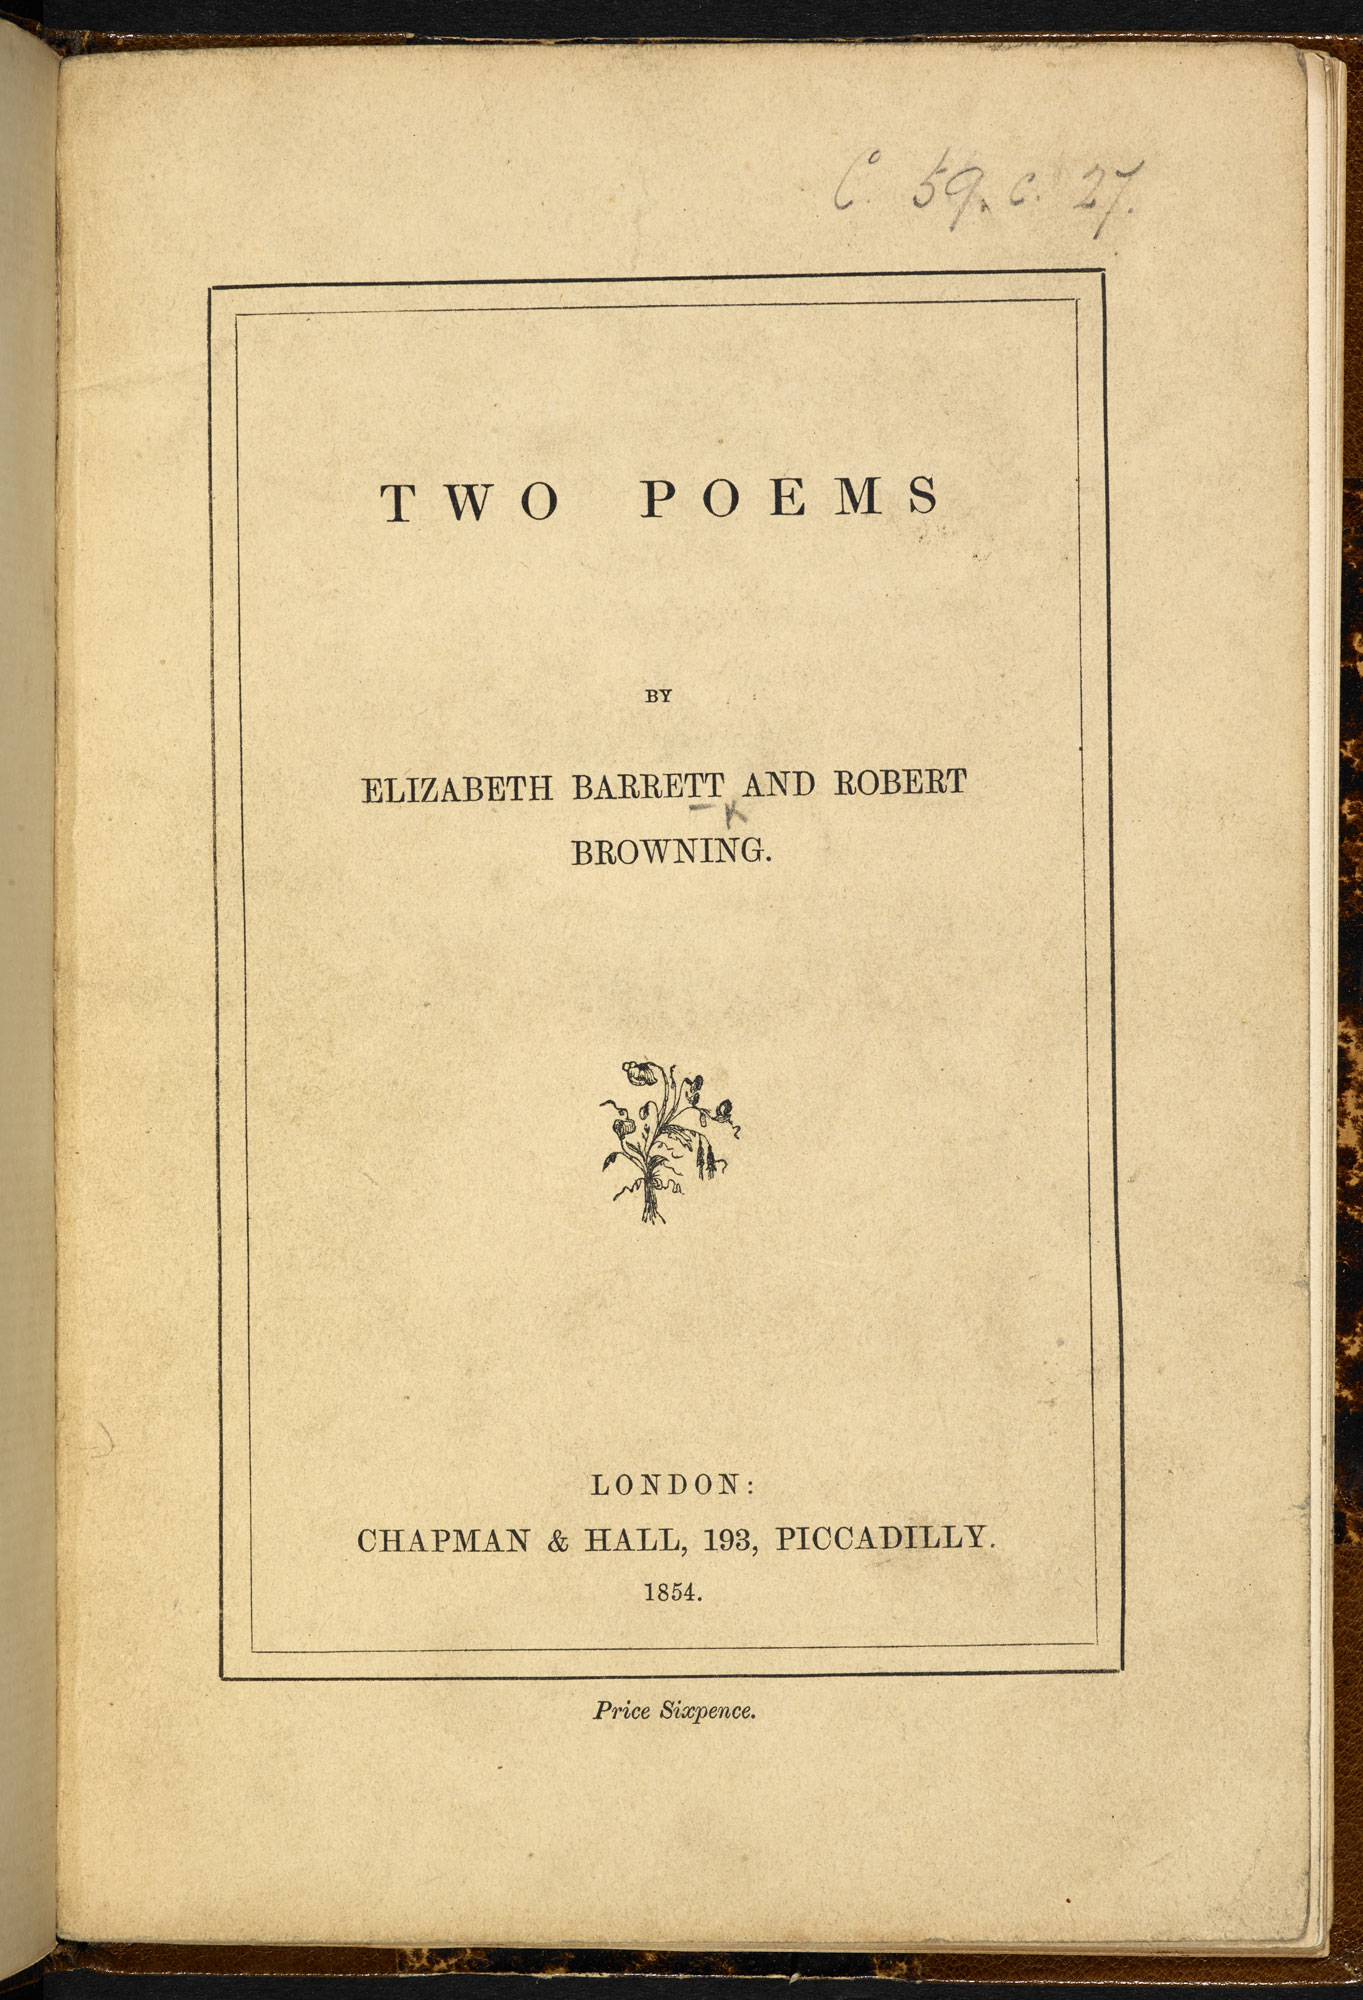 A Plea for the Ragged Schools of London' by Elizabeth Barrett Browning [page: title page]